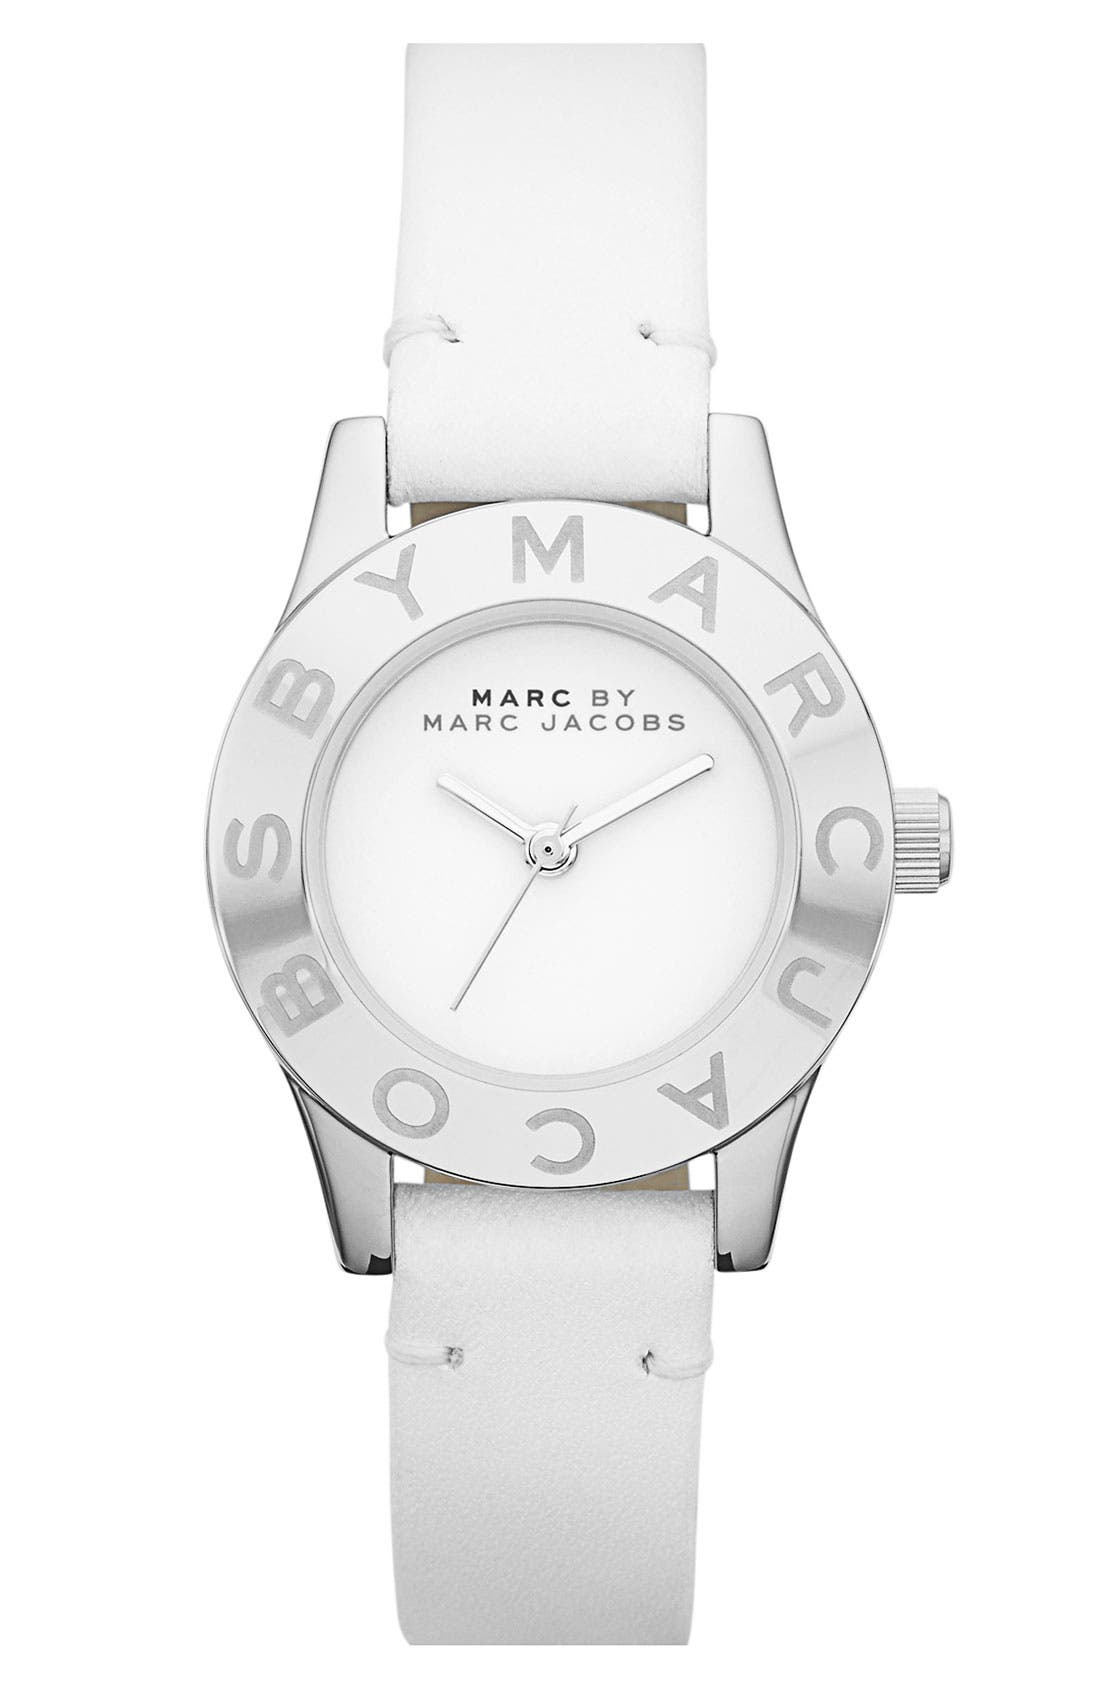 Main Image - MARC BY MARC JACOBS 'Blade' Round Leather Strap Watch